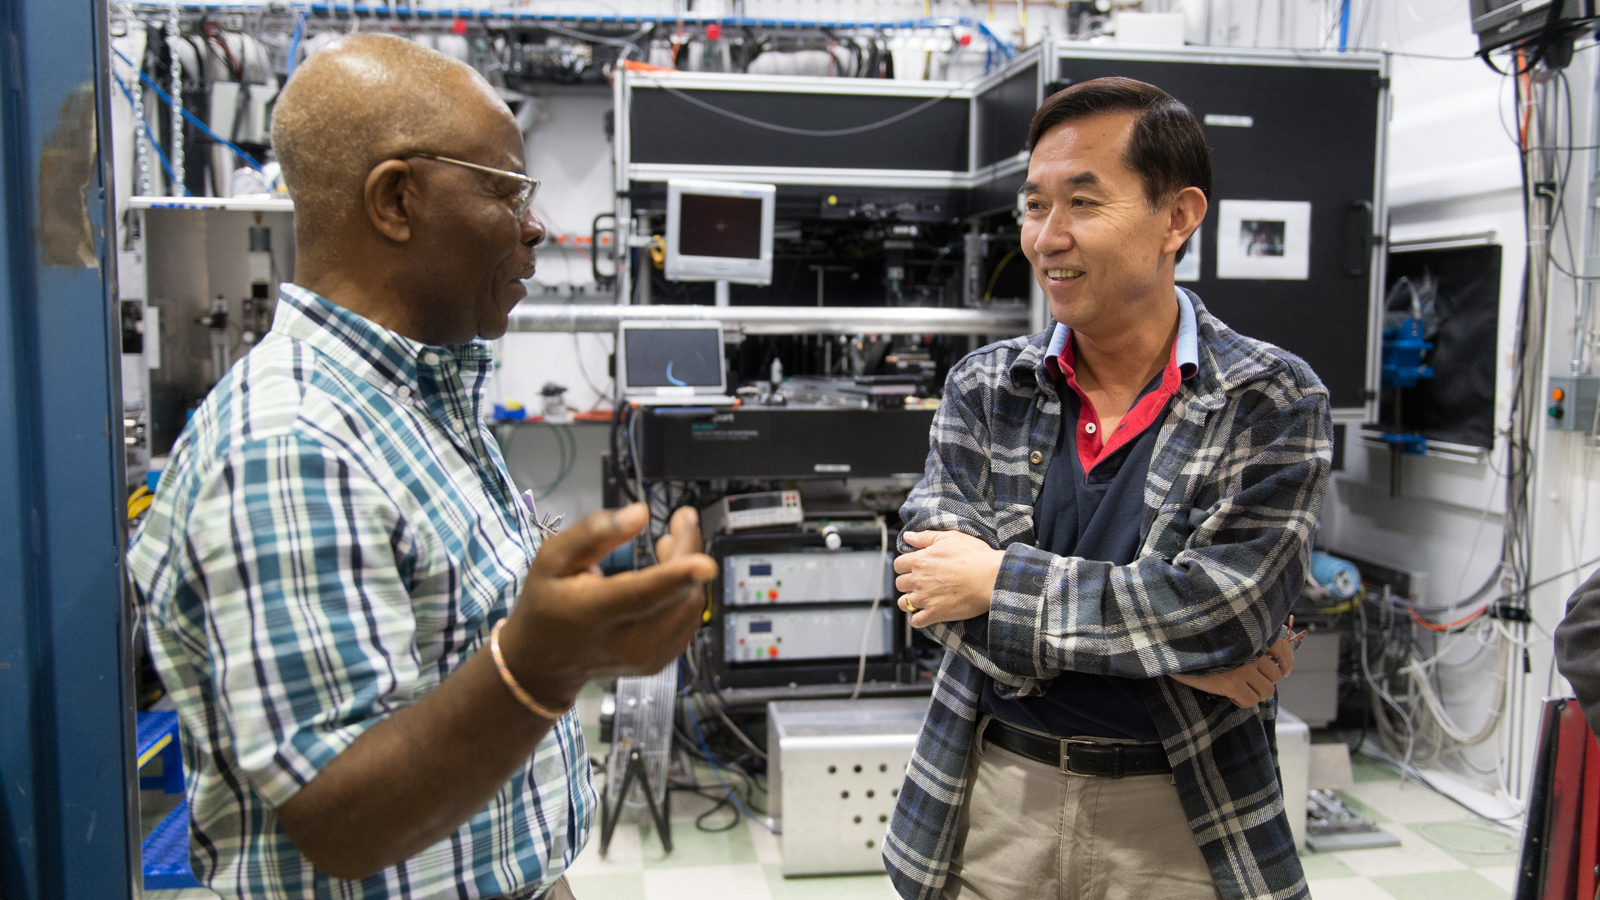 INCREASE members visited Argonne's Advanced Photon Source to network and learn how to submit competitive proposals for their research.